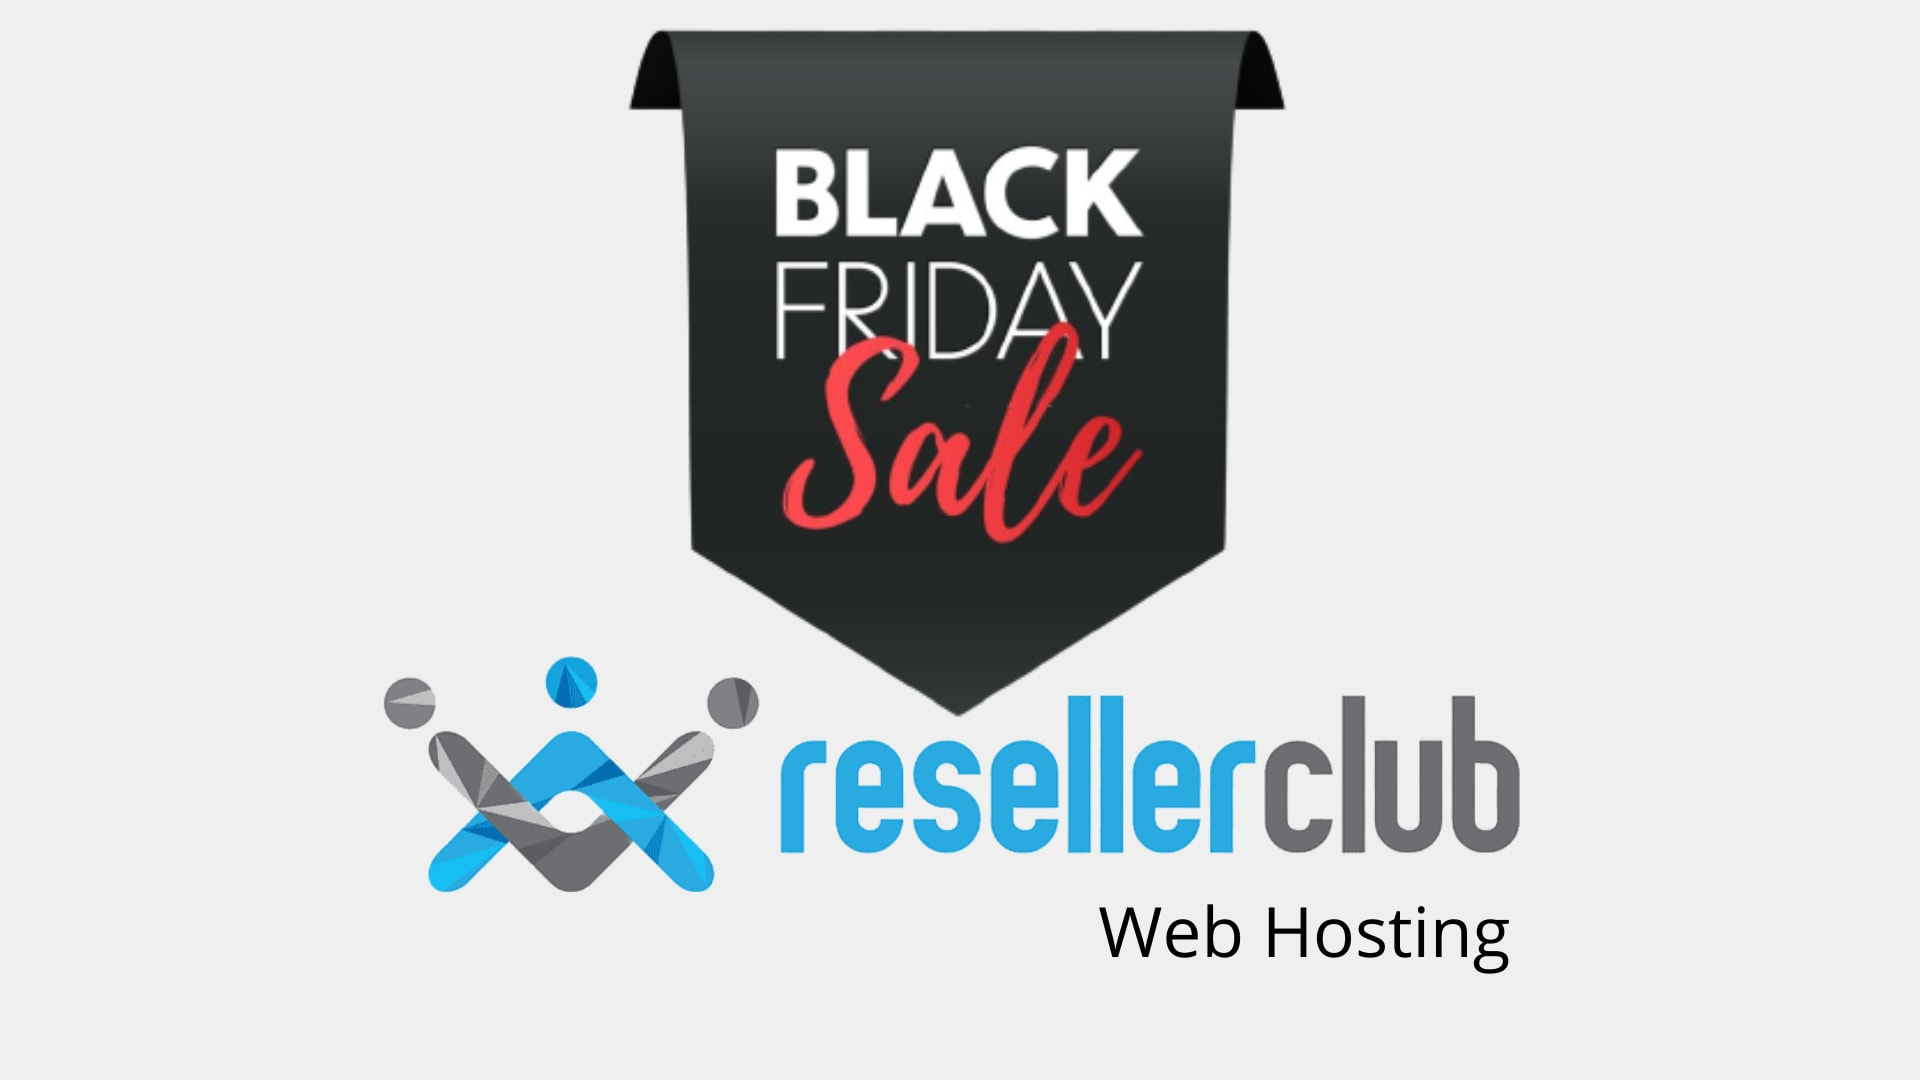 resellerclub black friday deals 2020 - Top 10 Black Friday Hosting Deals 2020